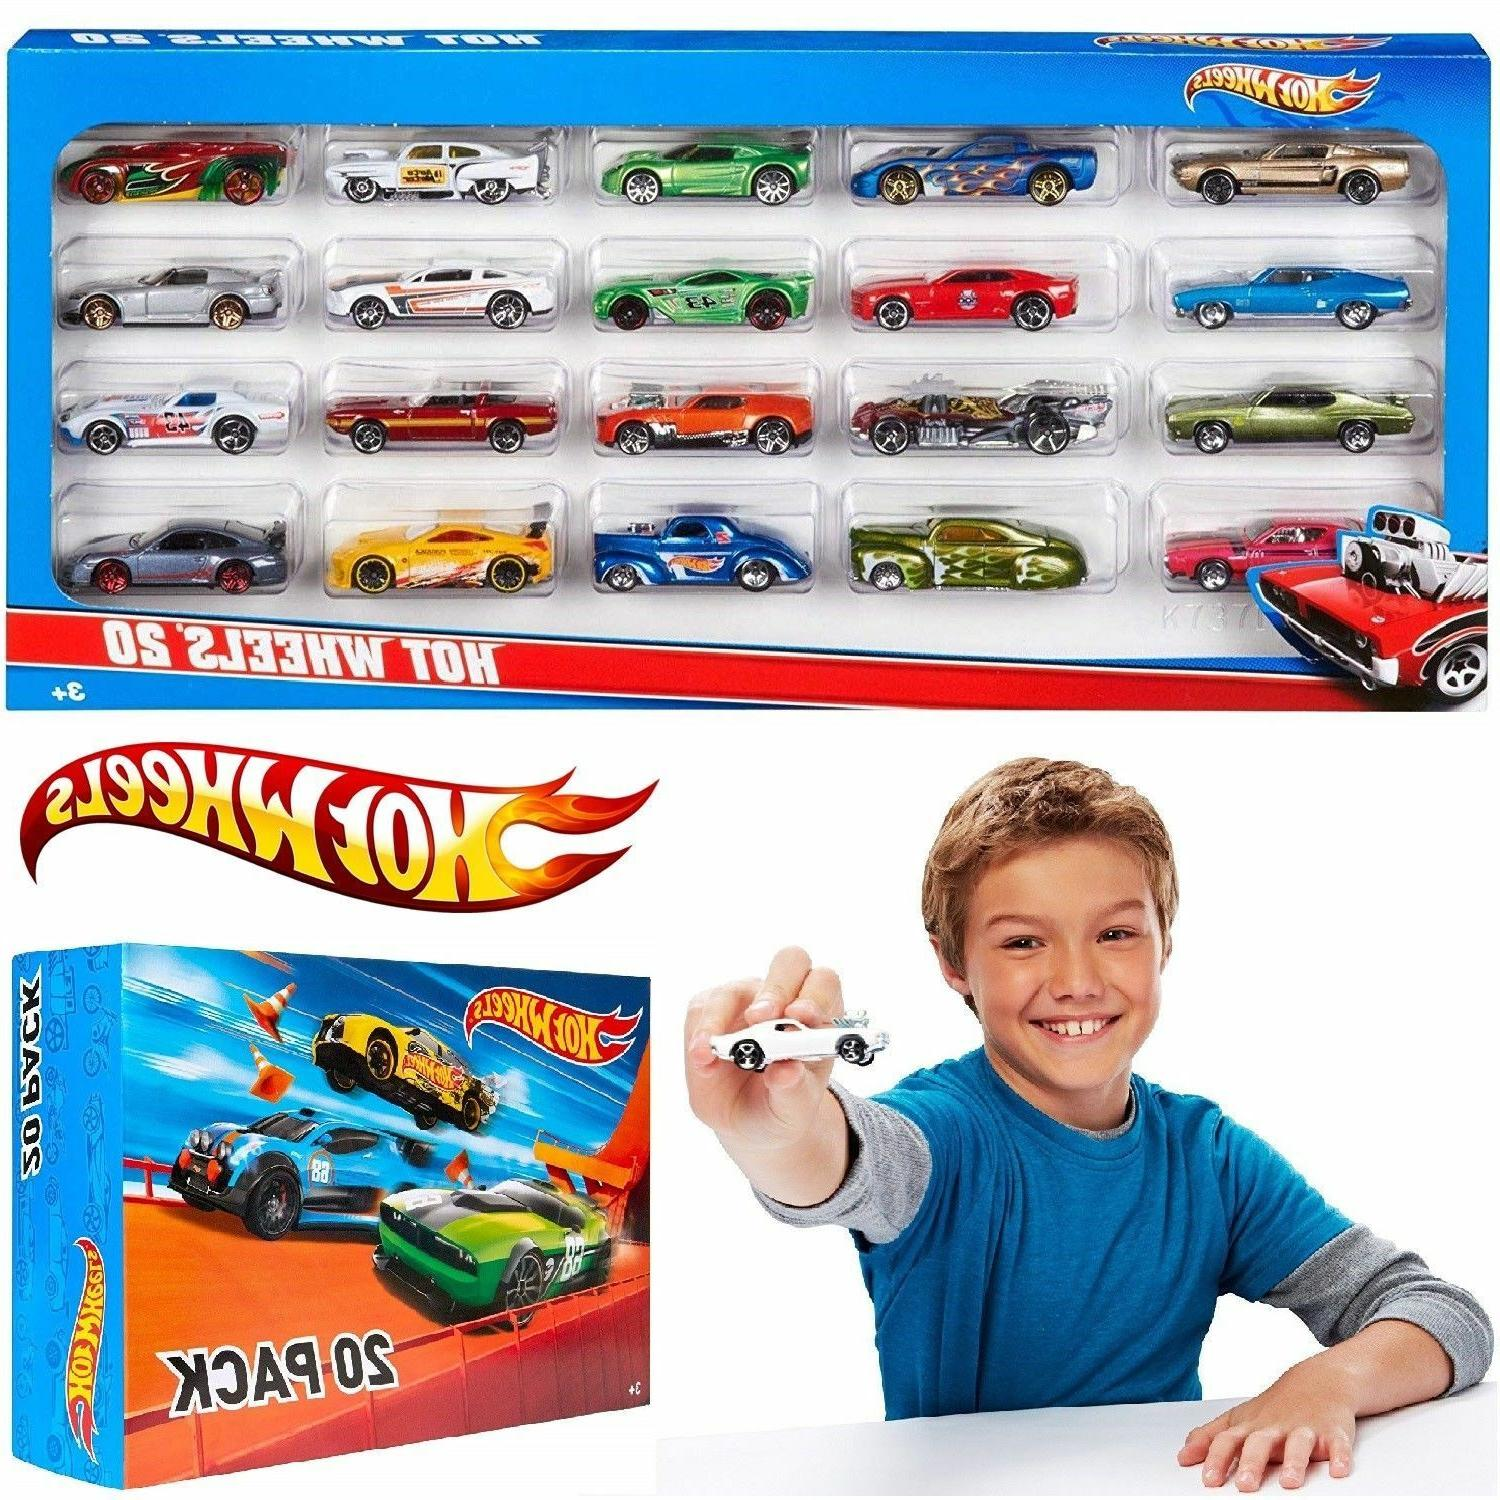 20 cars toys gift for kids track